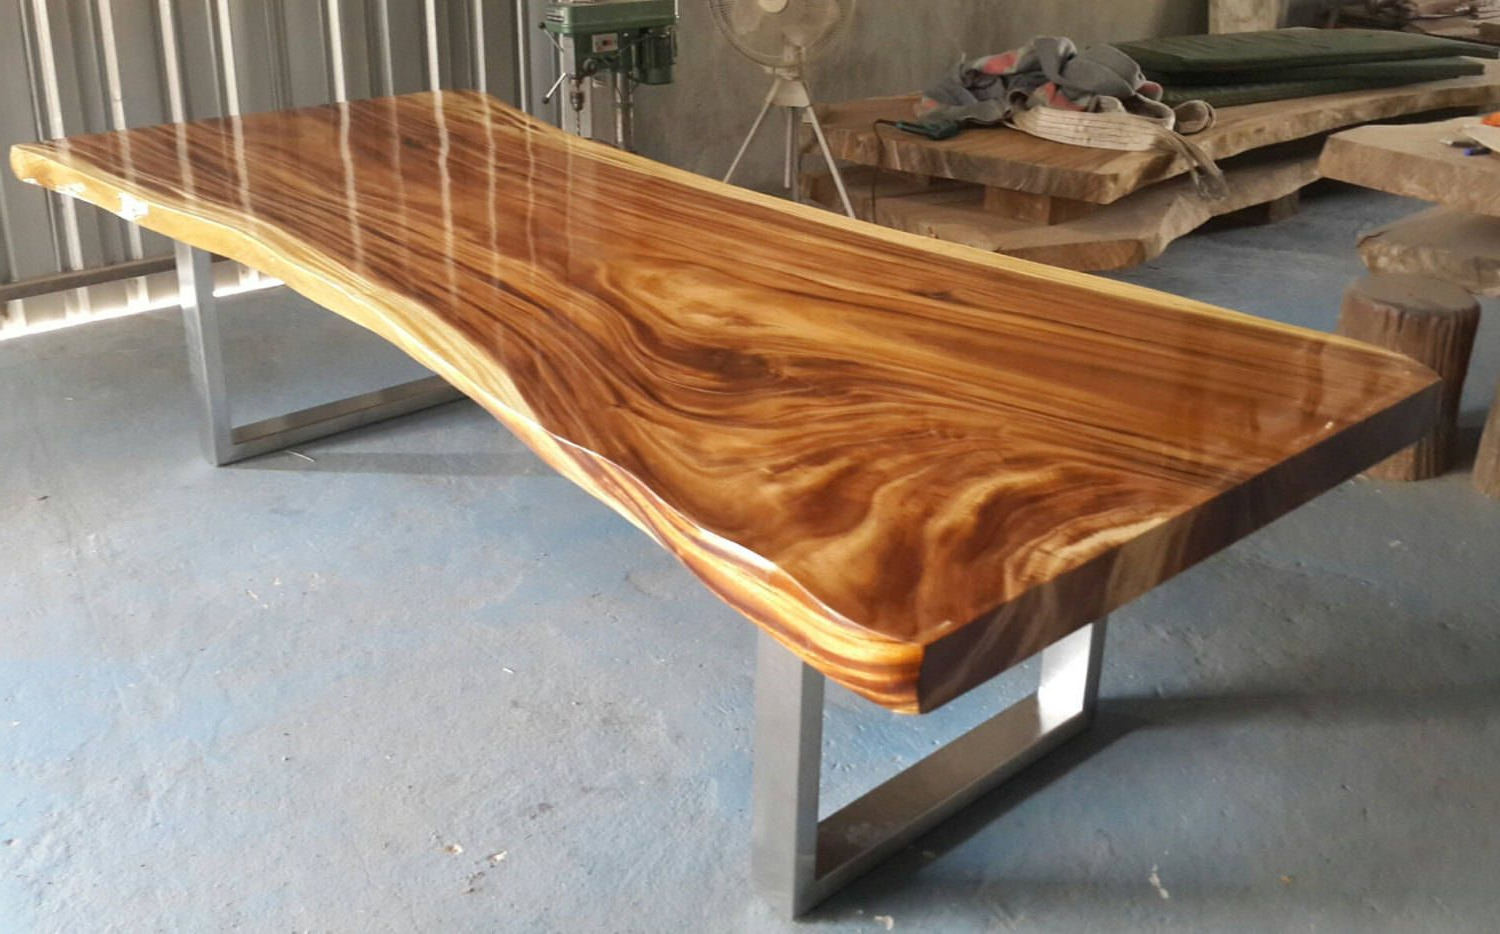 Live Edge Dining Table Golden Acacia Wood Reclaimed Single Pertaining To 2019 Acacia Dining Tables With Black X Legs (View 15 of 25)